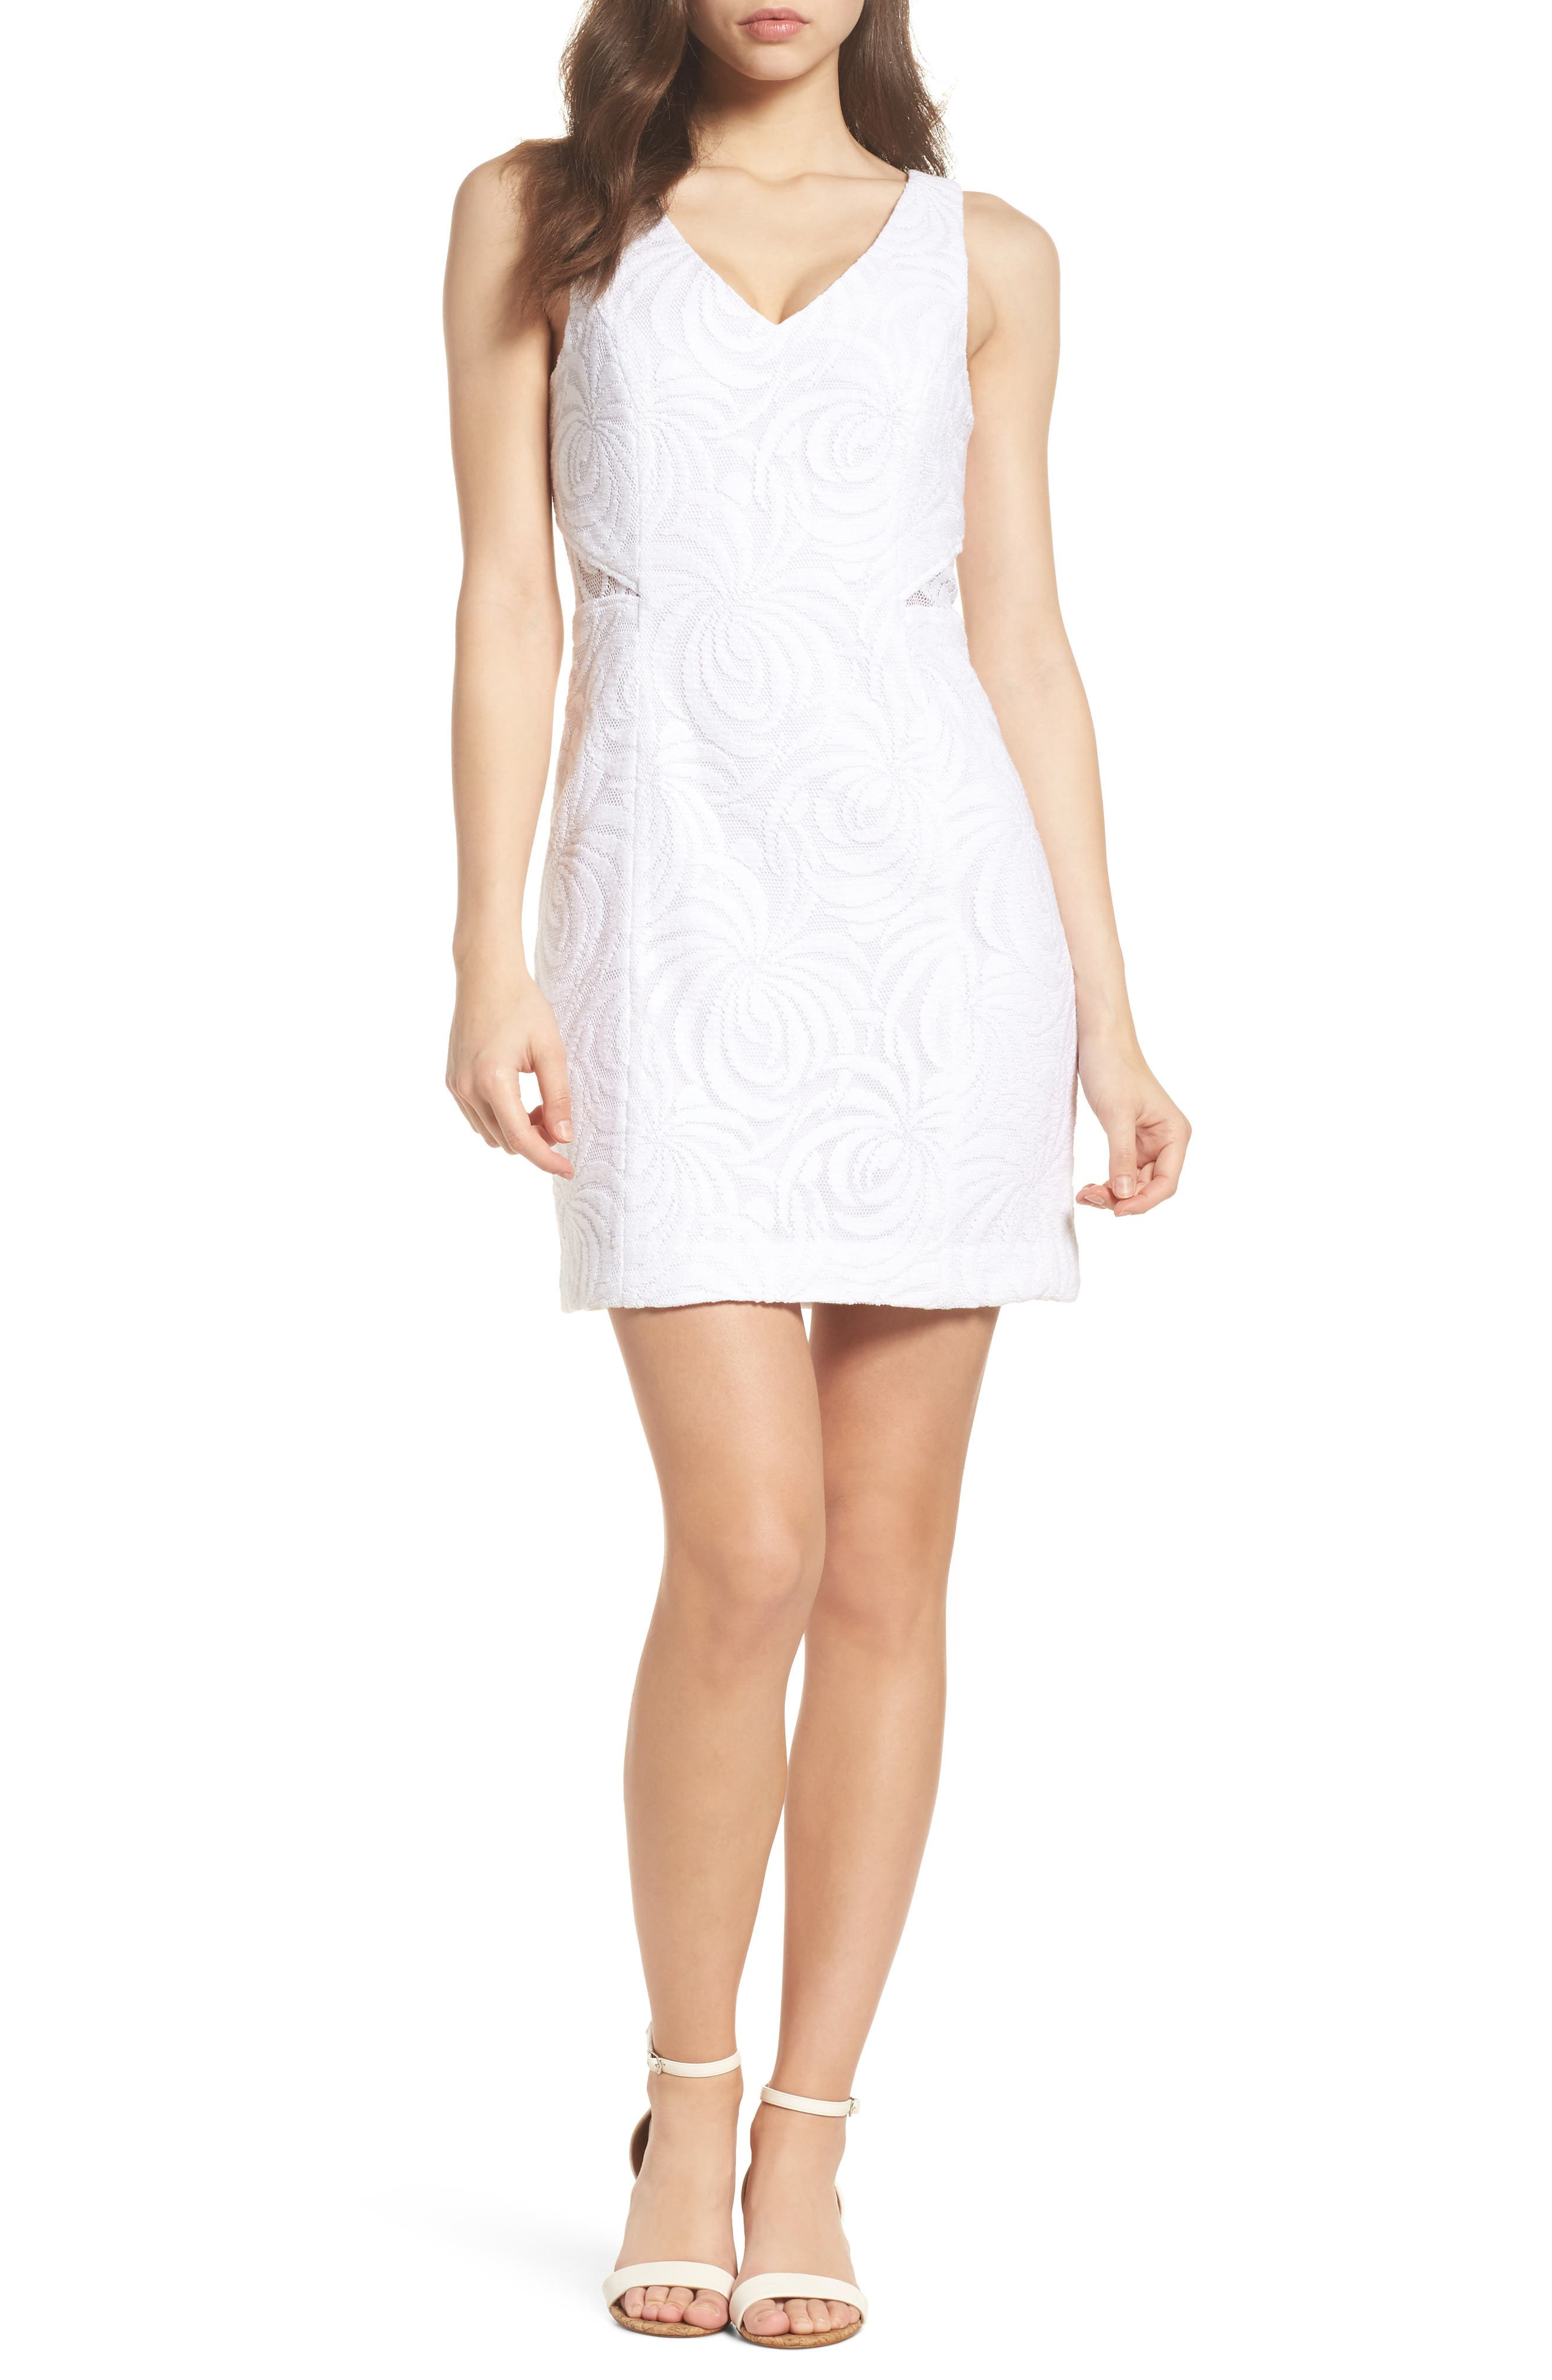 Blakely Lace Shift Dress,                             Main thumbnail 1, color,                             Resort White Sea Swirling Lace